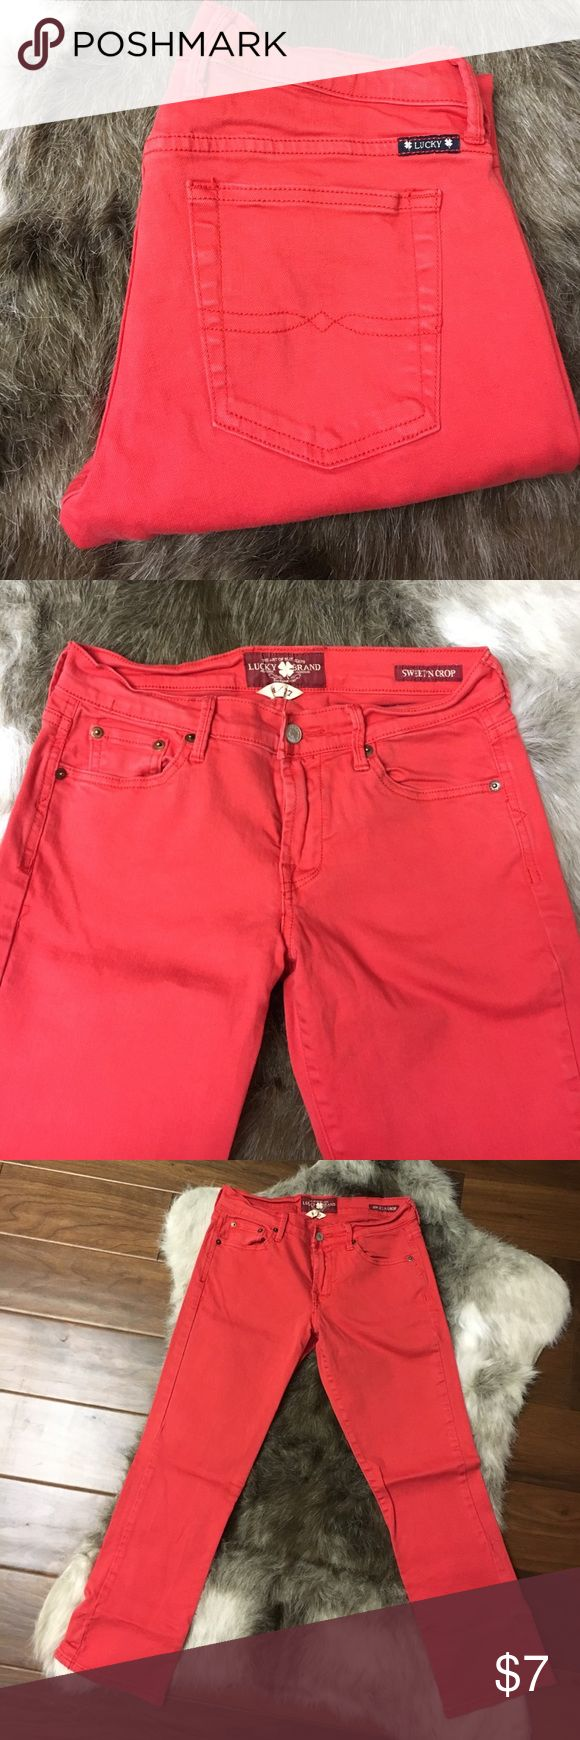 """Lucky Brand Coral Capris 4/27 Great condition. """"Sweet'N Crop"""" Lucky Brand coral colored capri's. size 4/27 Lucky Brand Jeans Ankle & Cropped"""